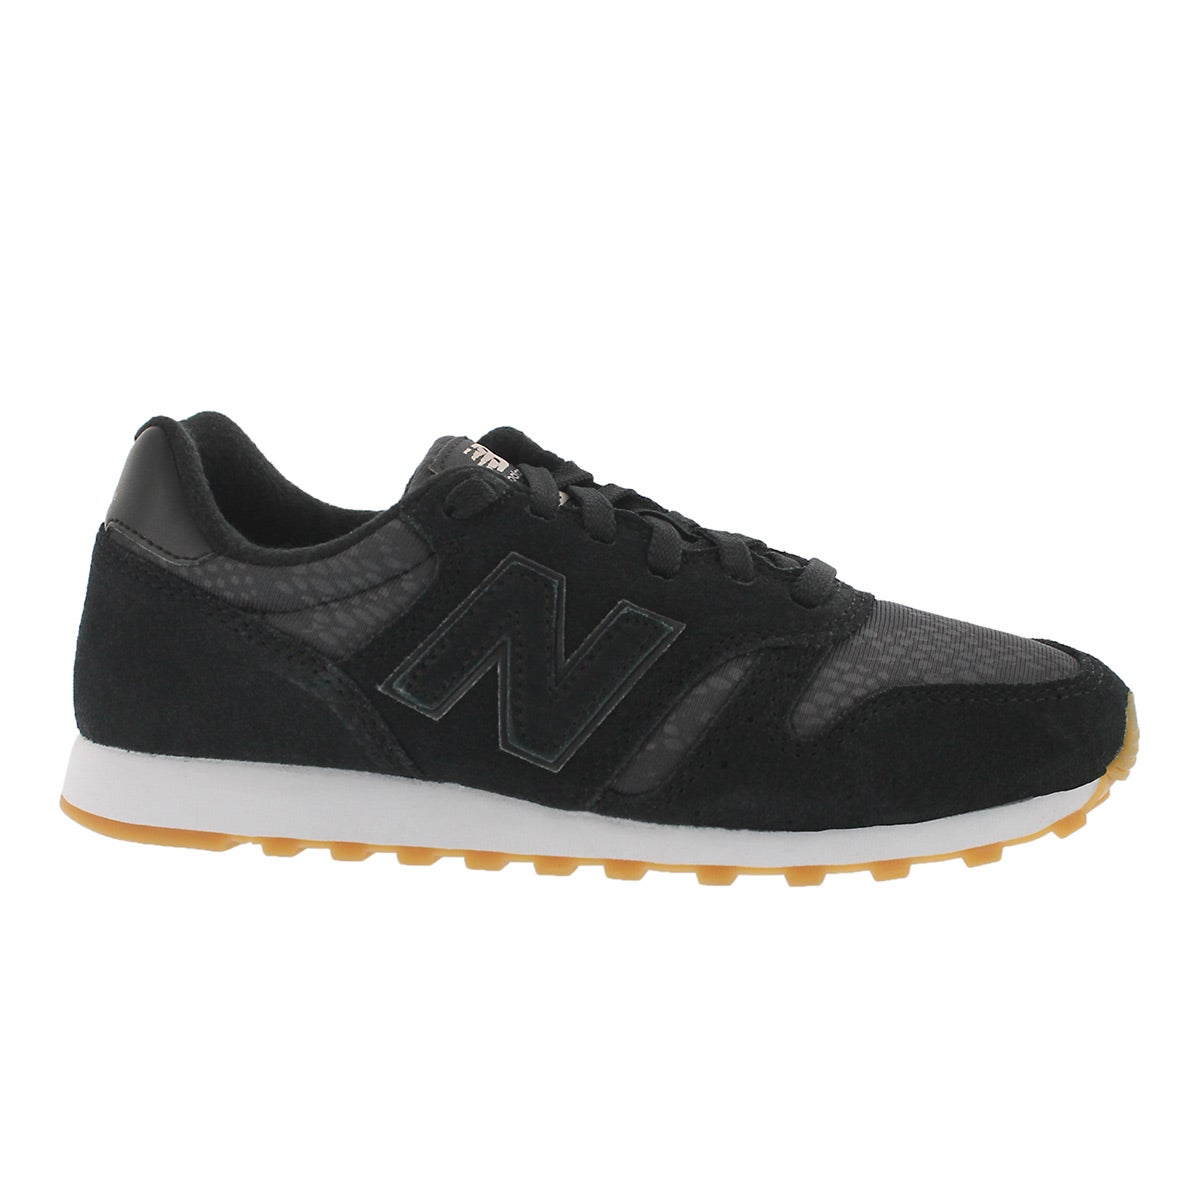 Lds 373 black lace up running shoe